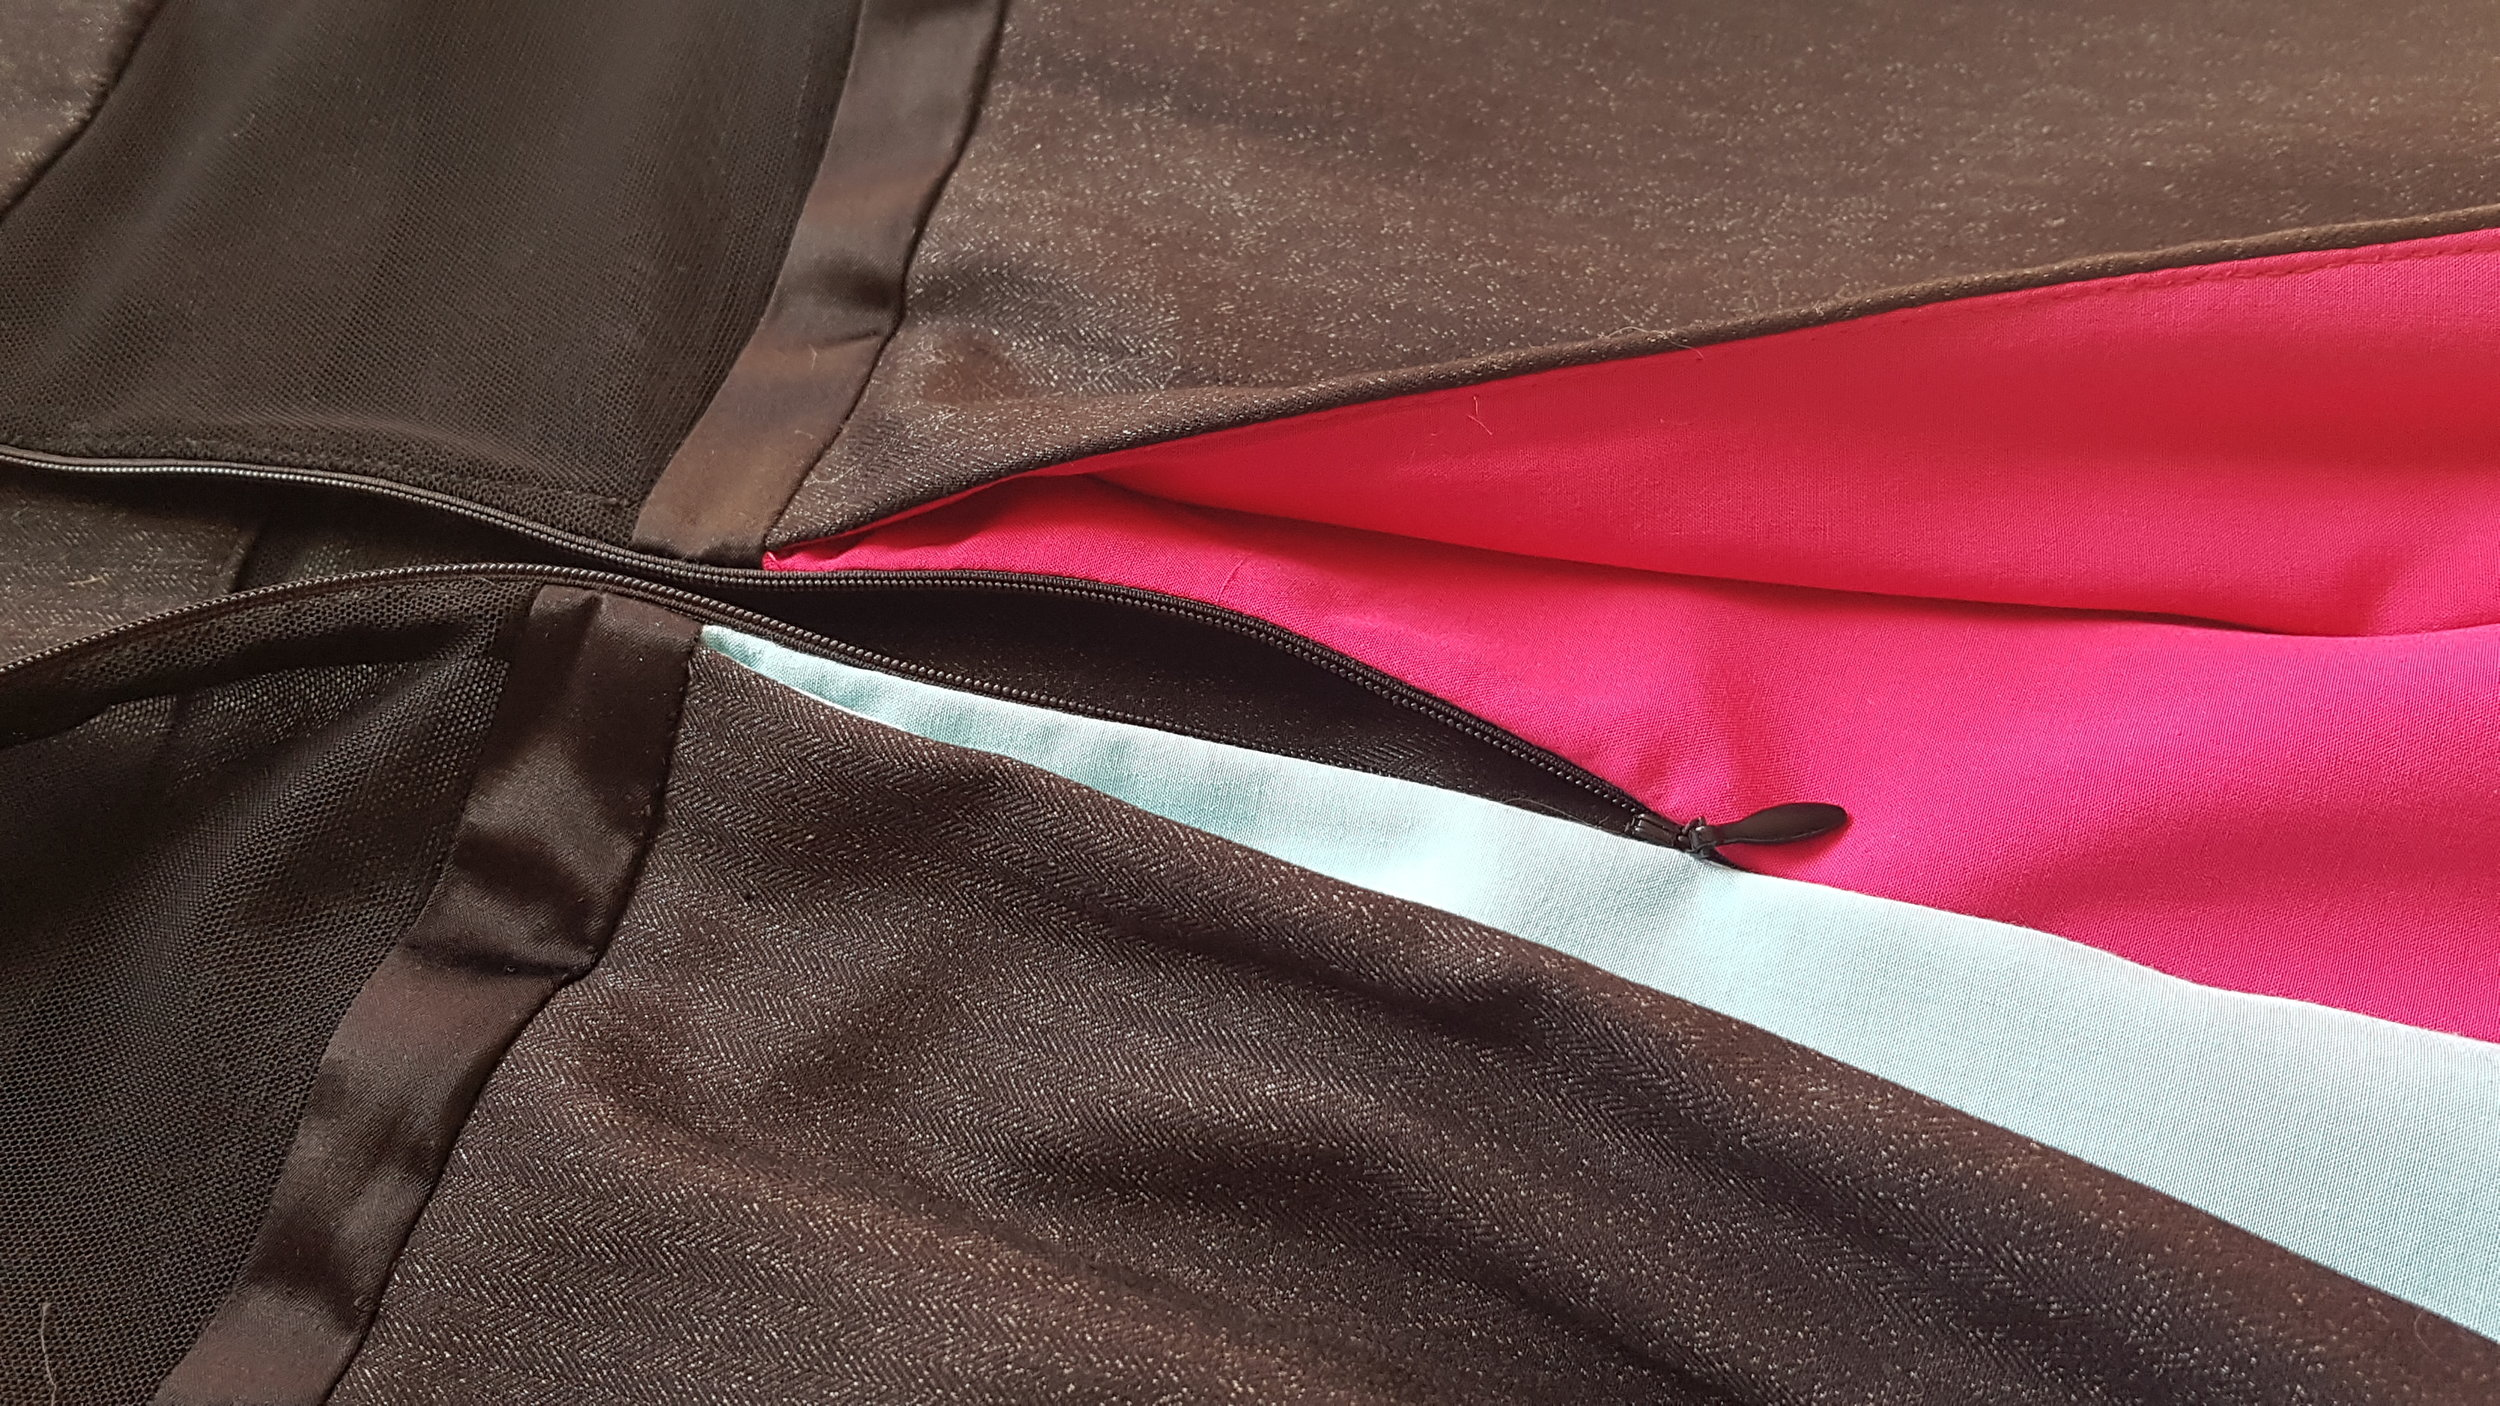 Caption: a close-up shot of the back of the Todrick dress, which has an inverted box pleat at the centre back. There is an invisible zipper that extends into the box pleat, which is split down the middle in two colours: bright pink and light blue. The bodice is separated by a black satin 'belt', with the lower bodice made of black mesh and the upper made of the same heather black herringbone suiting as the rest of the dress.